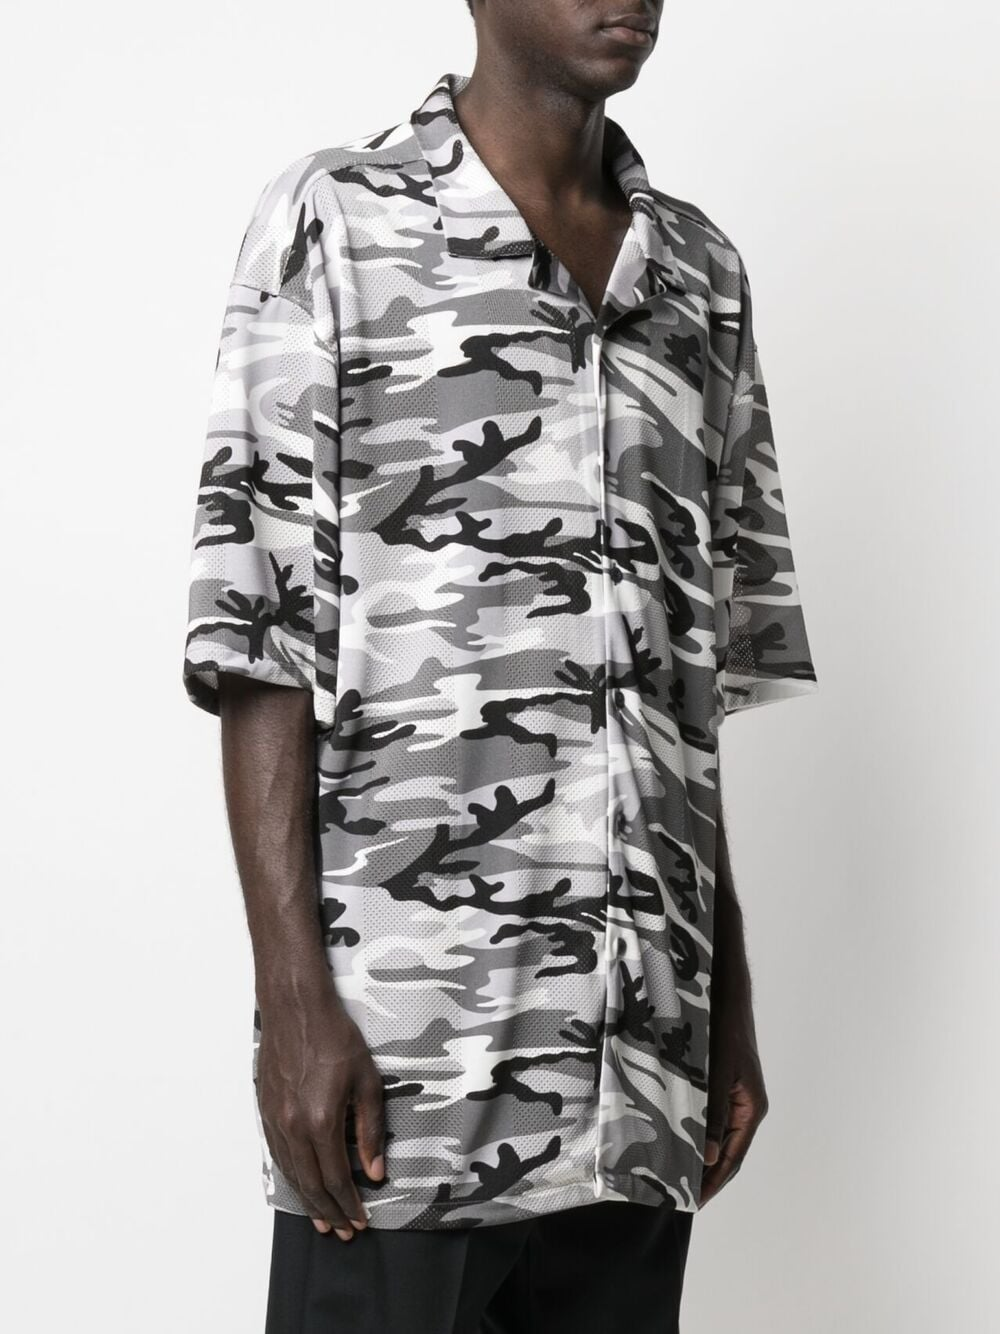 polyester and sports jersey shirt in mesh with grey camouflage print BALENCIAGA |  | 647651-TJLC51240